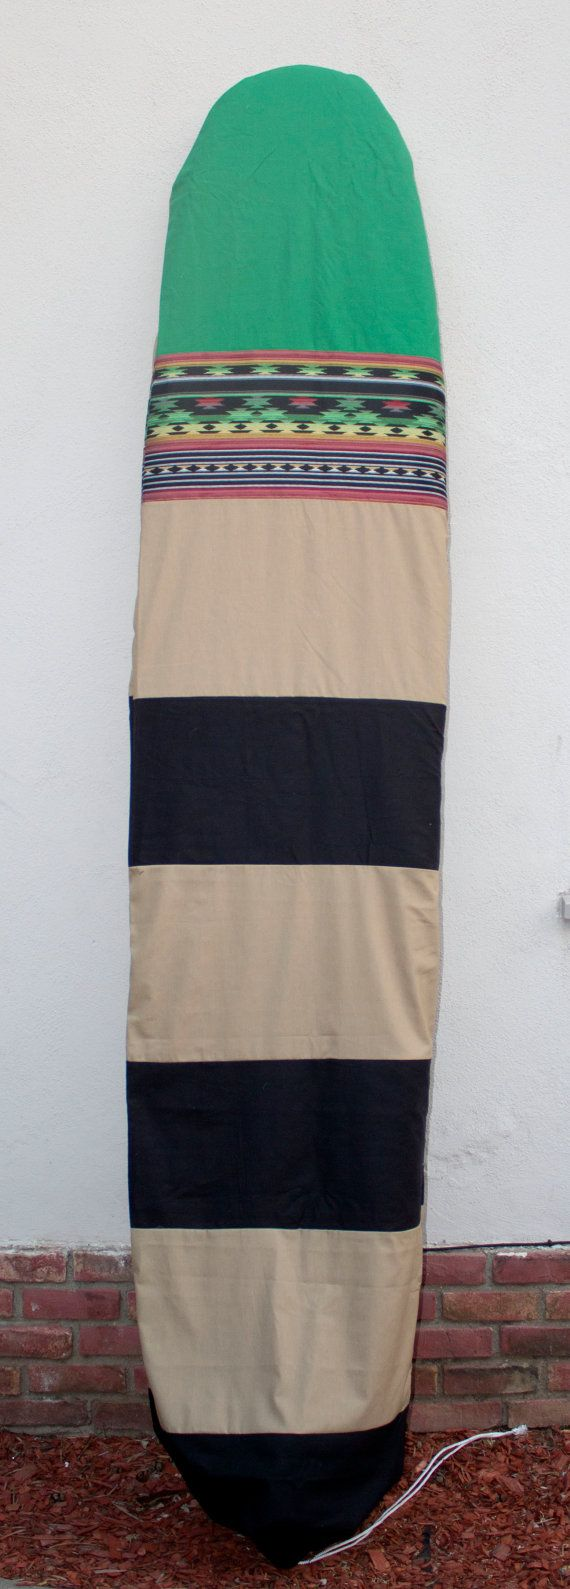 The Best Surfboard Bags Handmade 9FT 6IN by NorrisSurfboards, $95.00